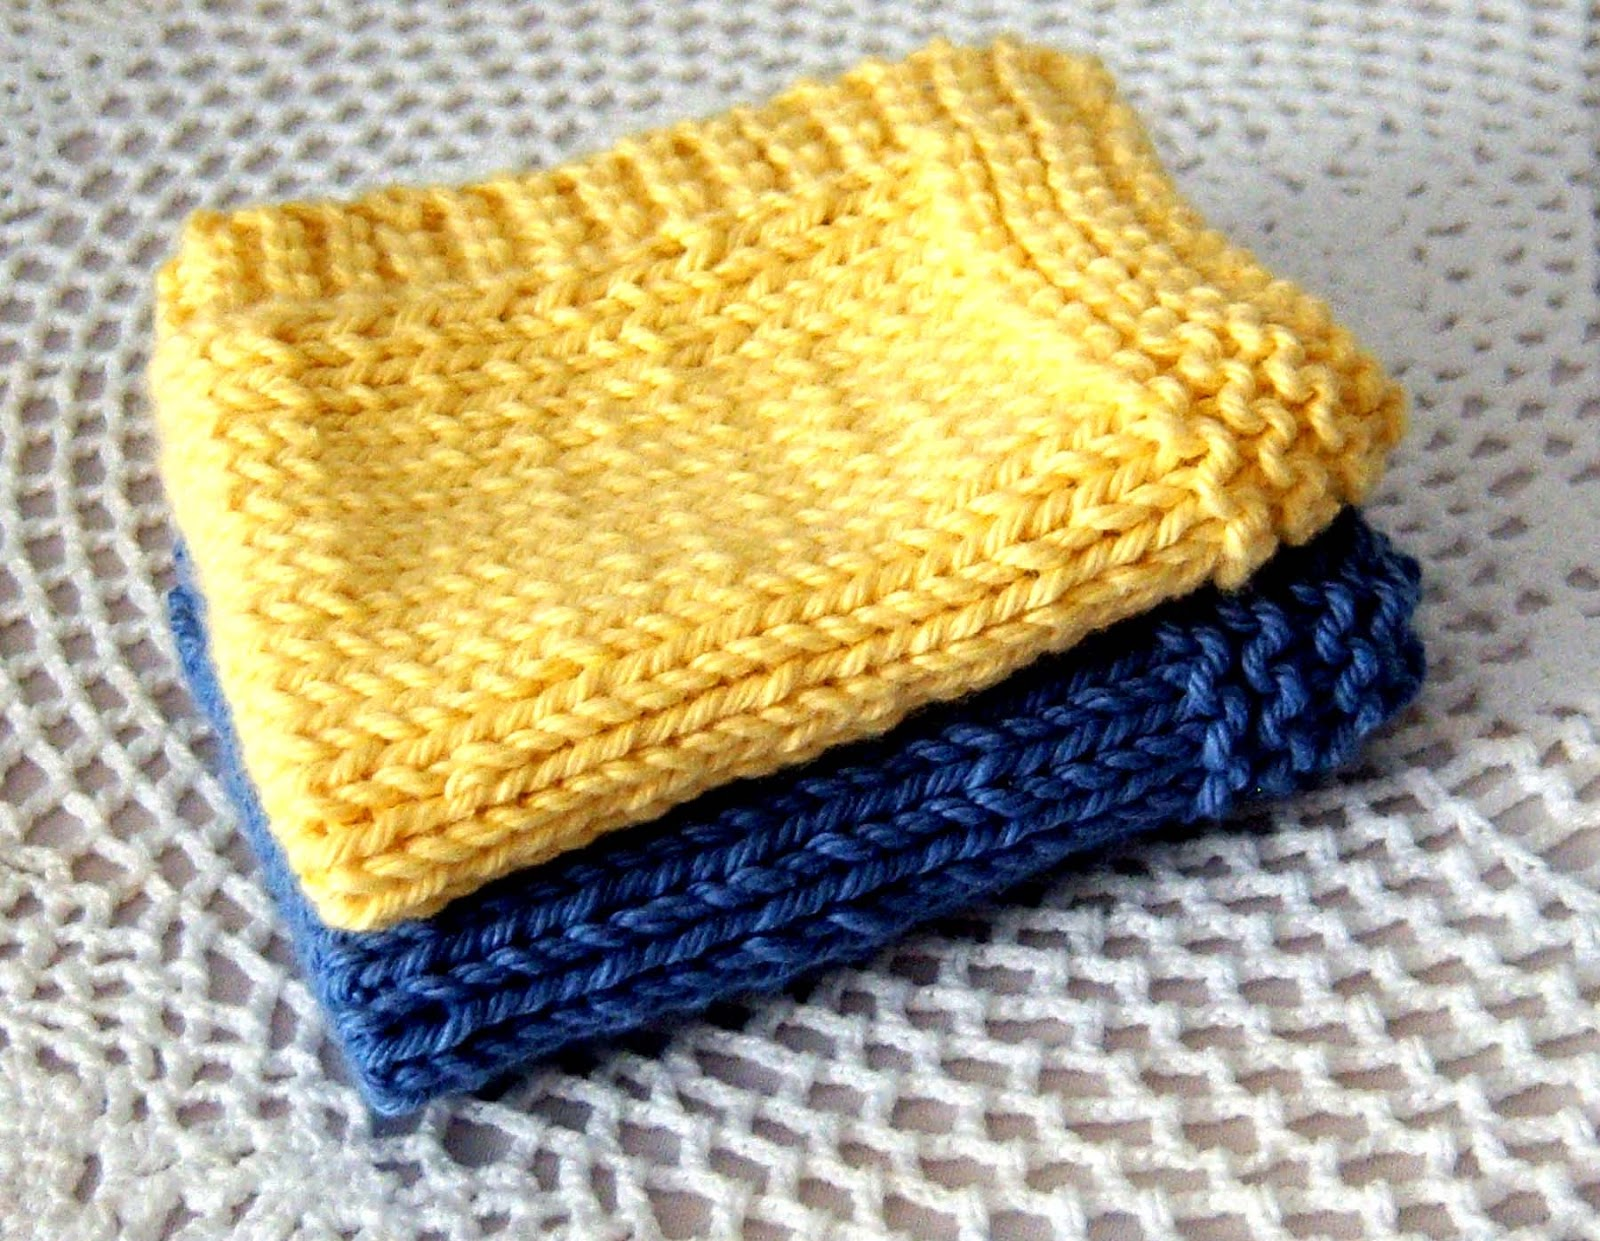 Shoregirls Creations: Knitted Dishcloths